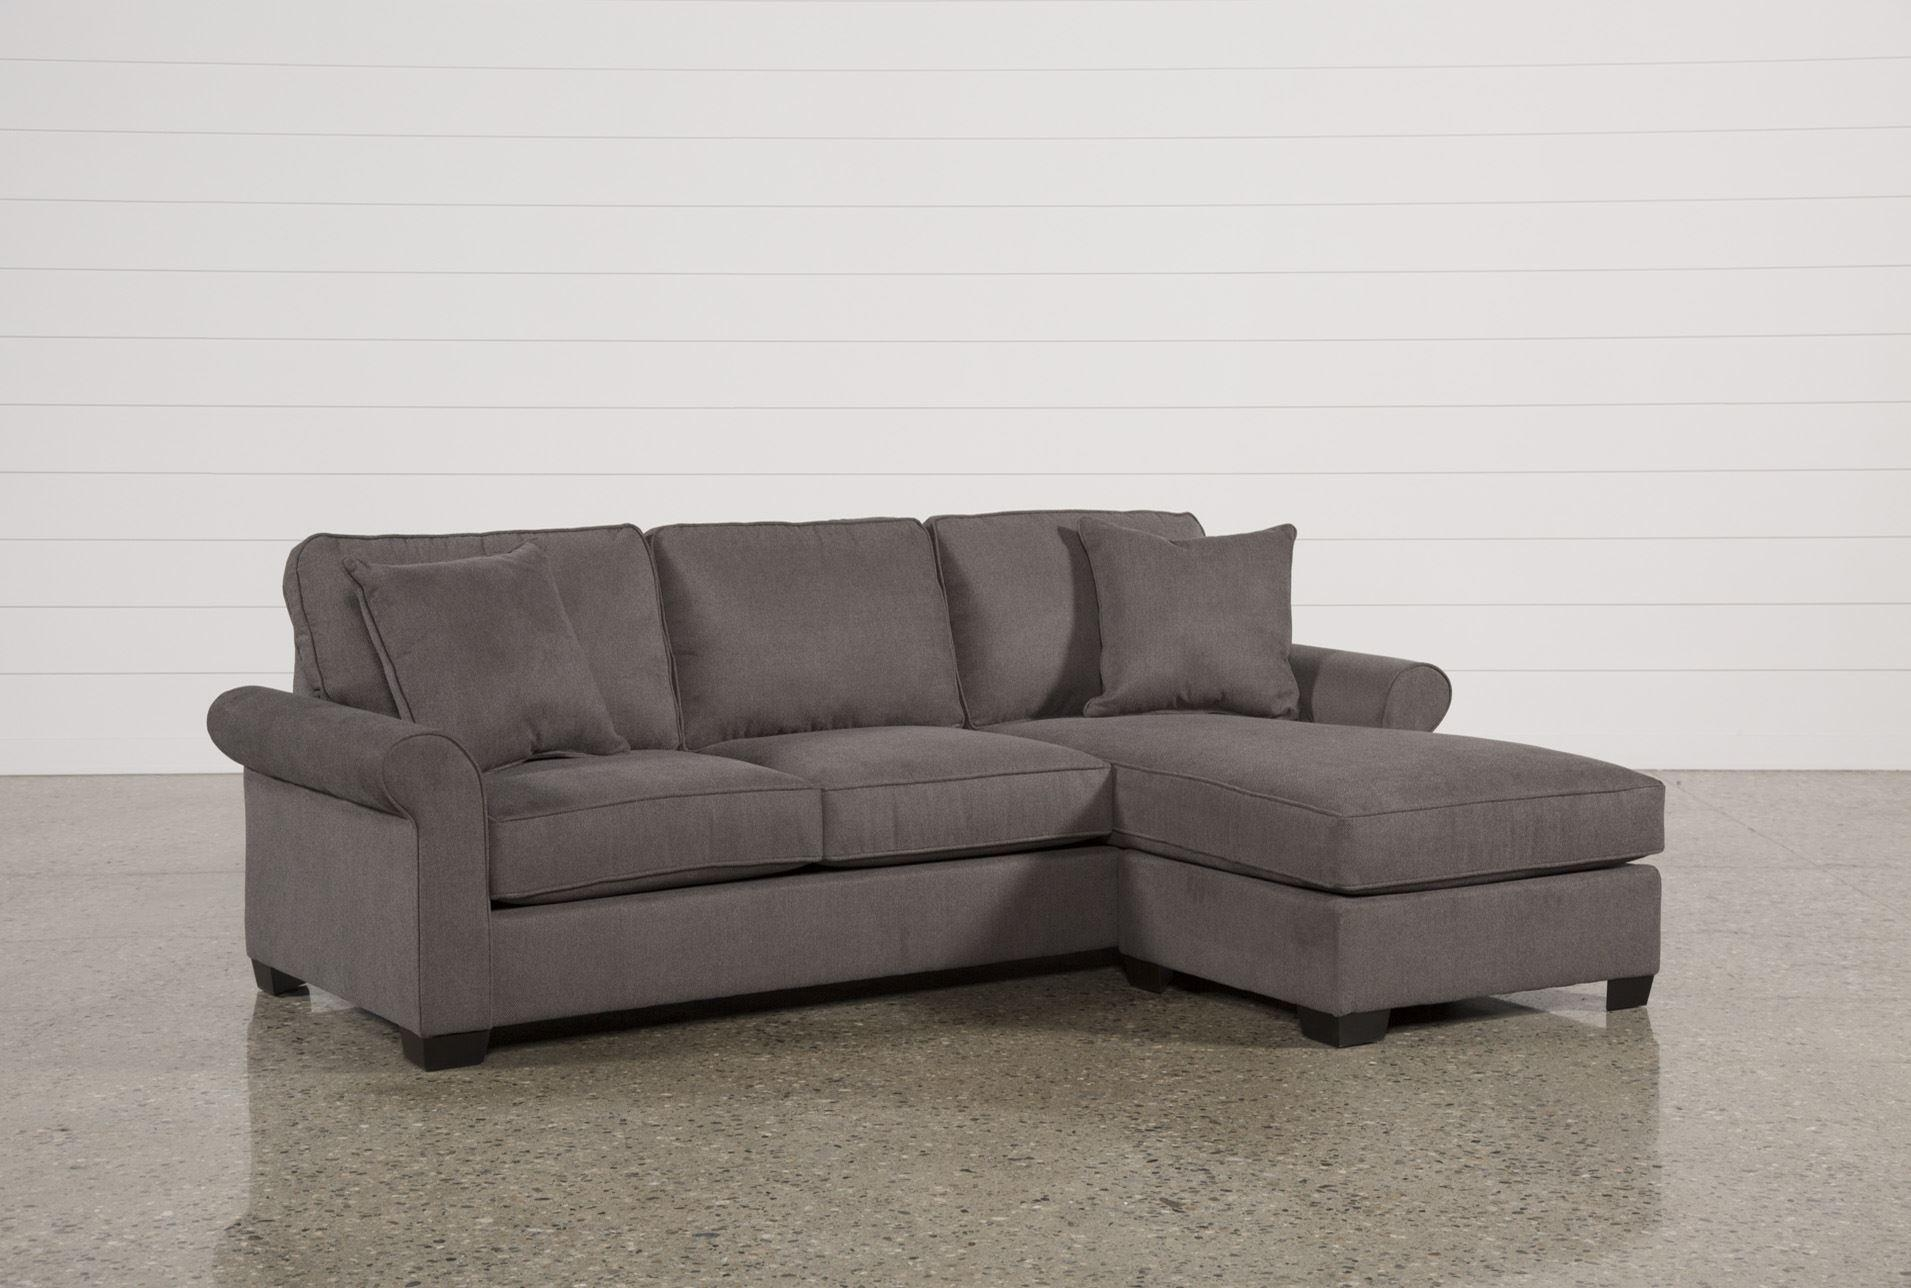 Abbyson Living Bedford Gray Linen Convertible Sleeper Sectional Intended For Abbyson Sectional Sofas (Image 2 of 20)